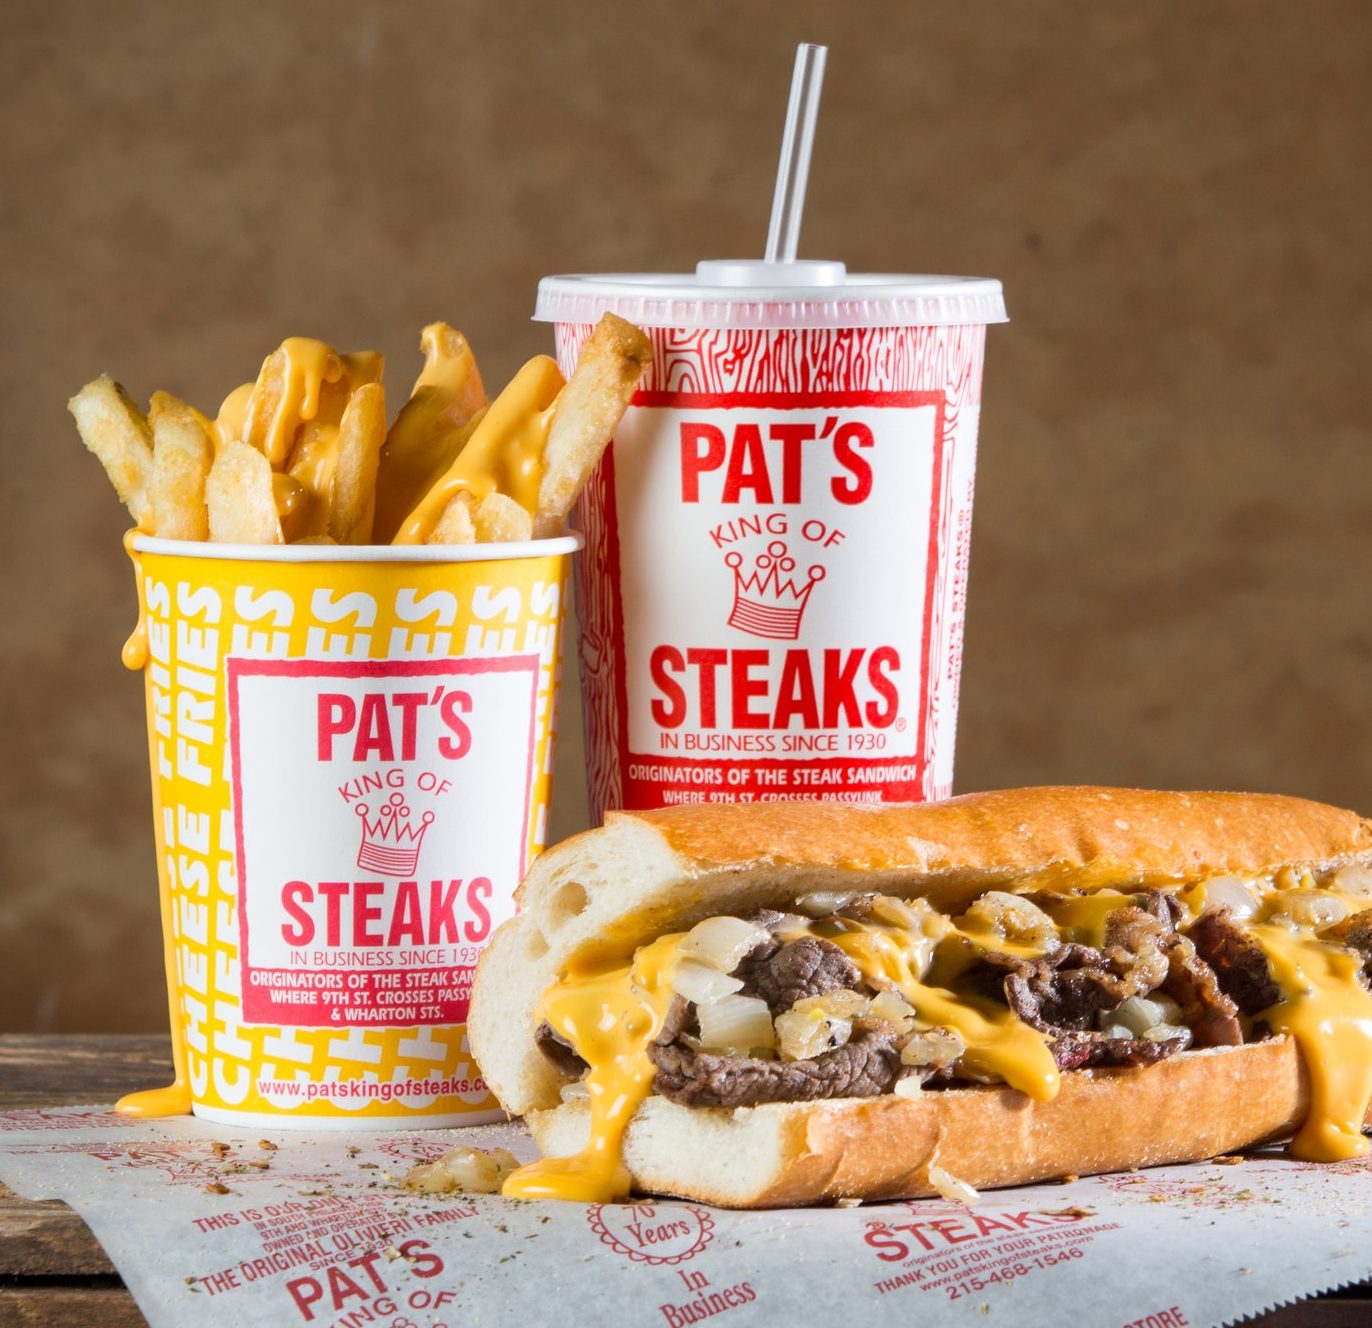 Pats King Of Steaks Since 1930